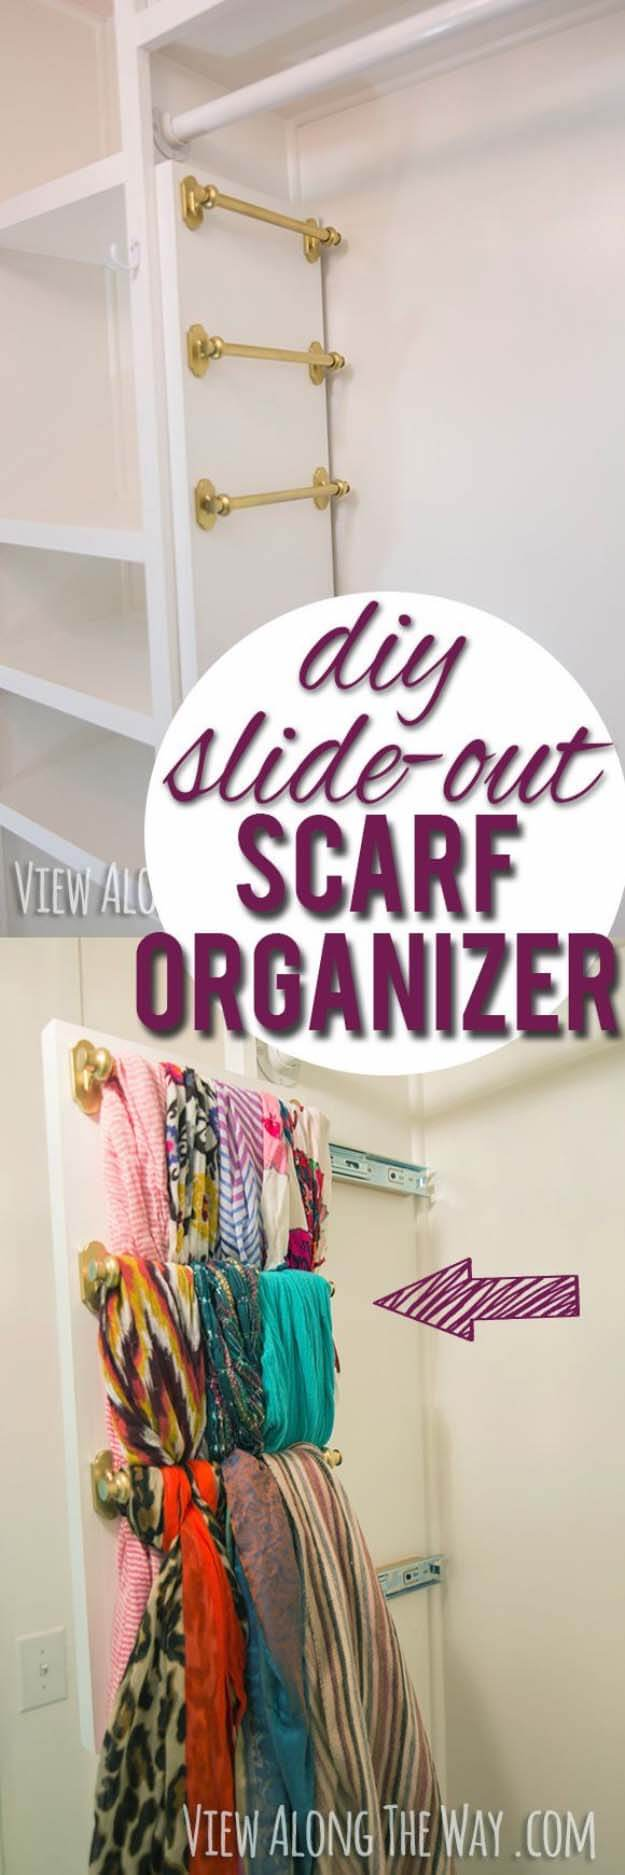 DIY Slide-Out Scarf And Belt Organizers